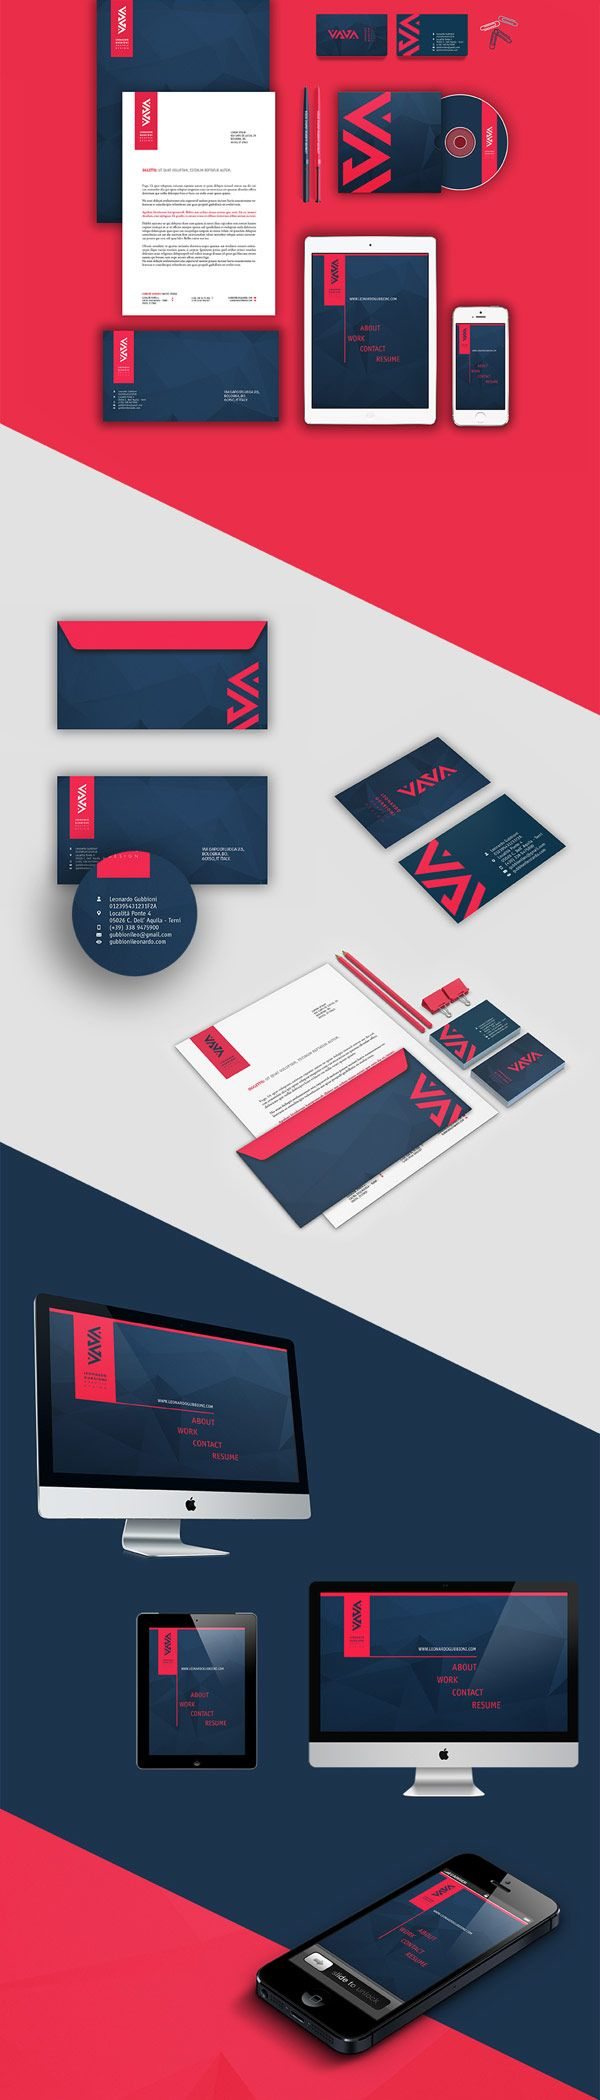 """Personal Identity Design. Leonardo Gubbioni is a graphic design student based in Terni, Italy. He graduated in 2010 in """"Advertising Techniques"""" at the """"Uni"""